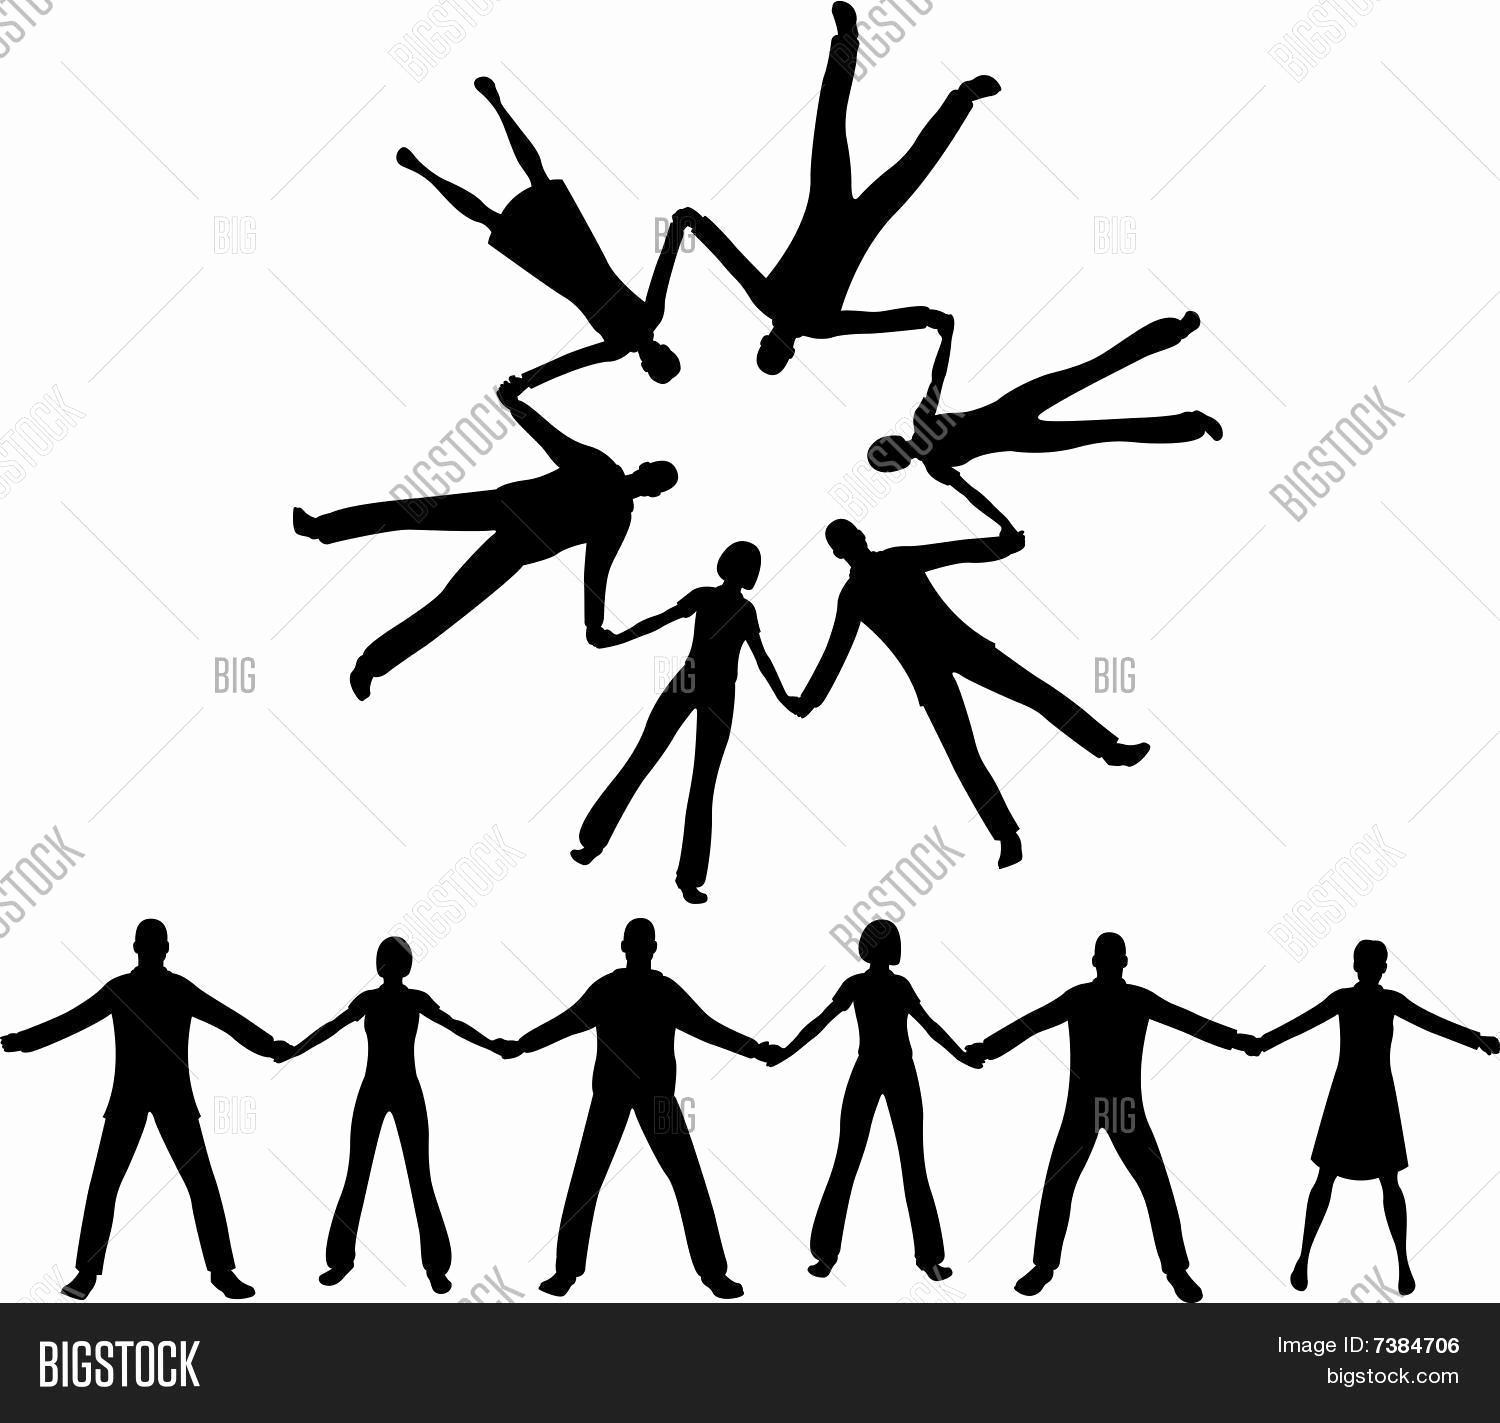 1500x1423 Vector People Silhouette Lovely Trauma Accident And Human Body